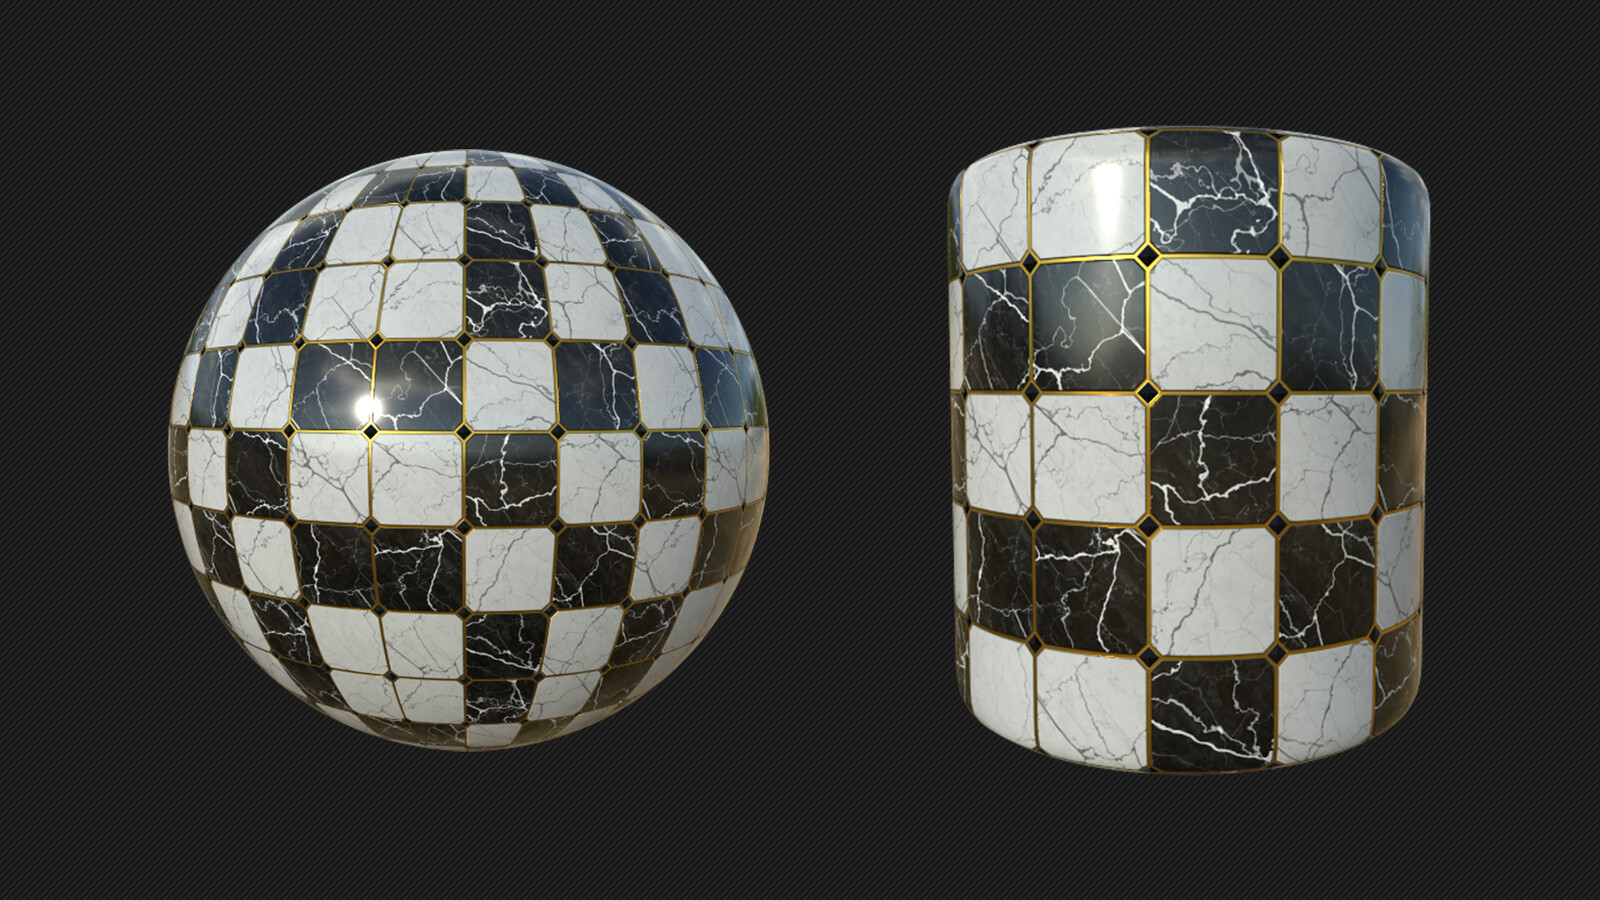 designer texture on different objects